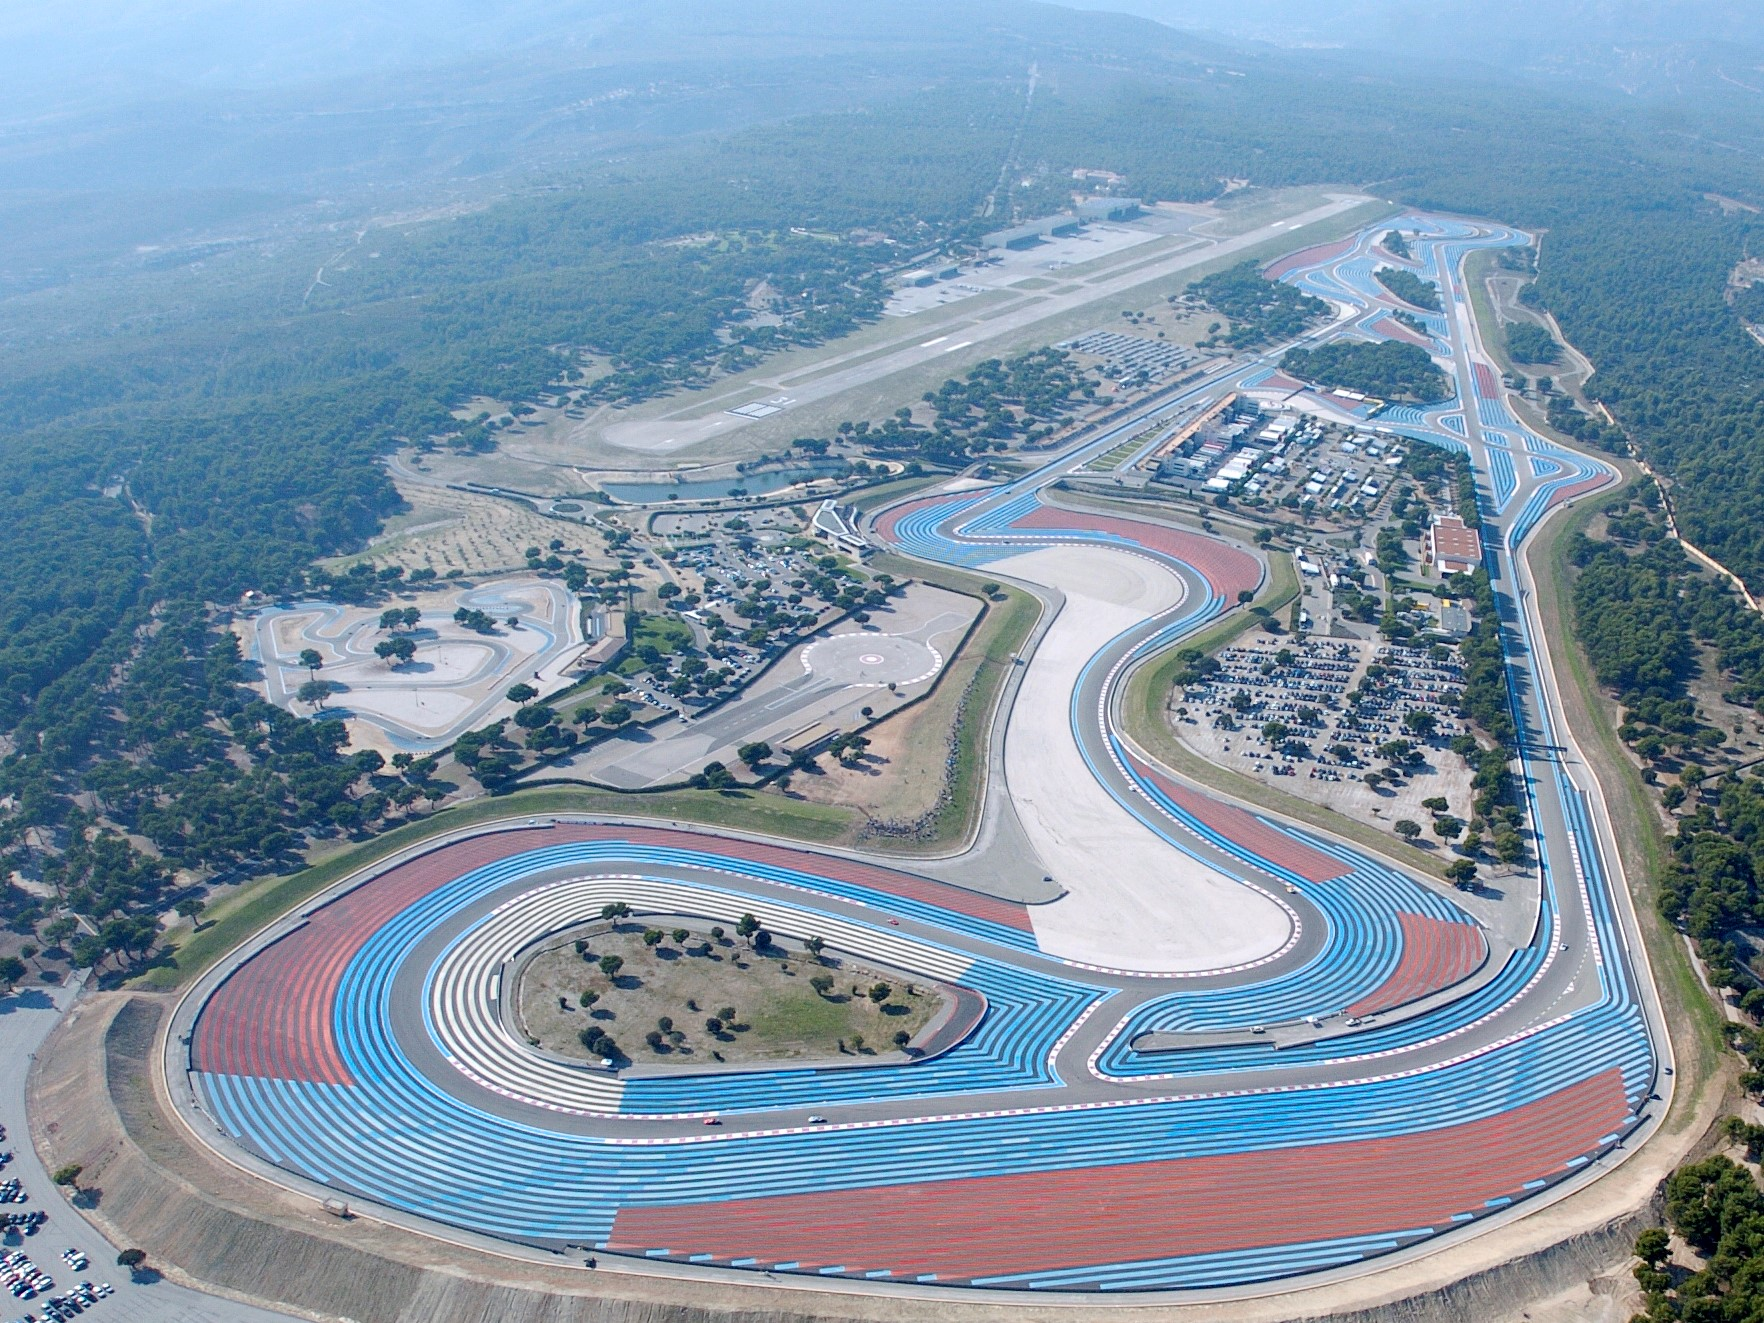 http://superf1.be/spip/IMG/jpg/circuit-paul-ricard-photo-2.jpg